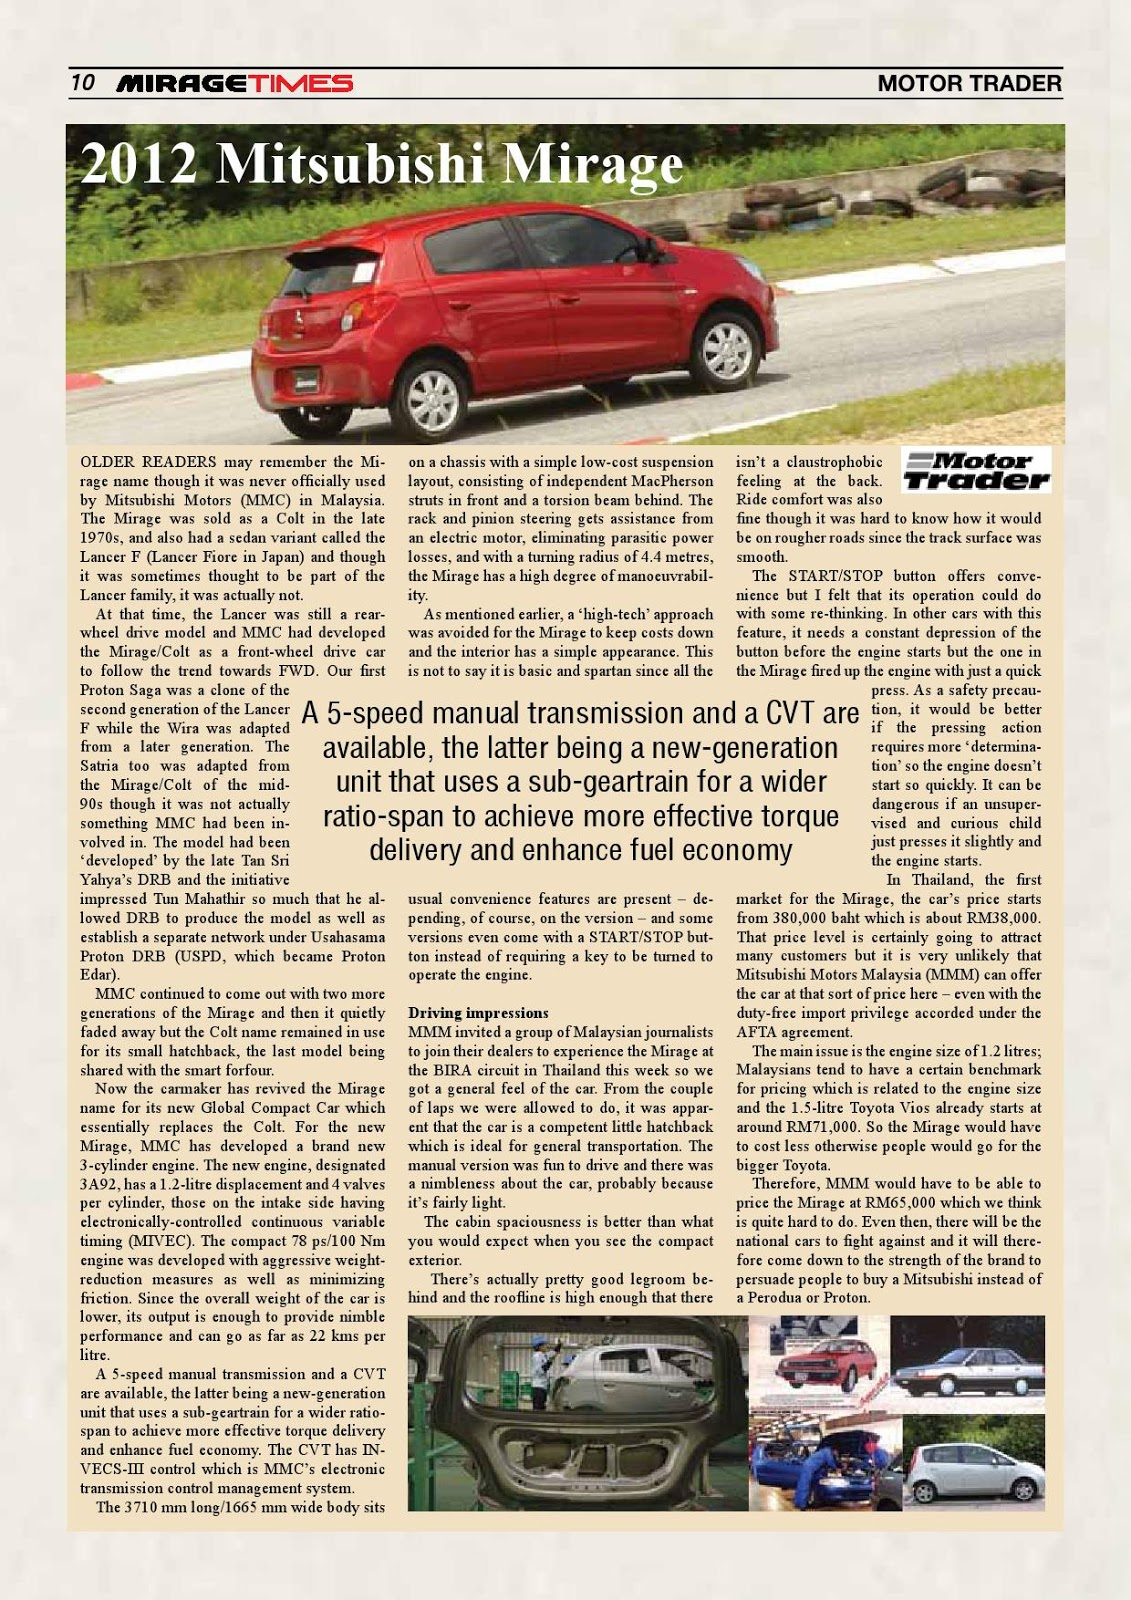 Mitsubishi Mirage Transmission Control Read What The Malaysian Media Have To Say About